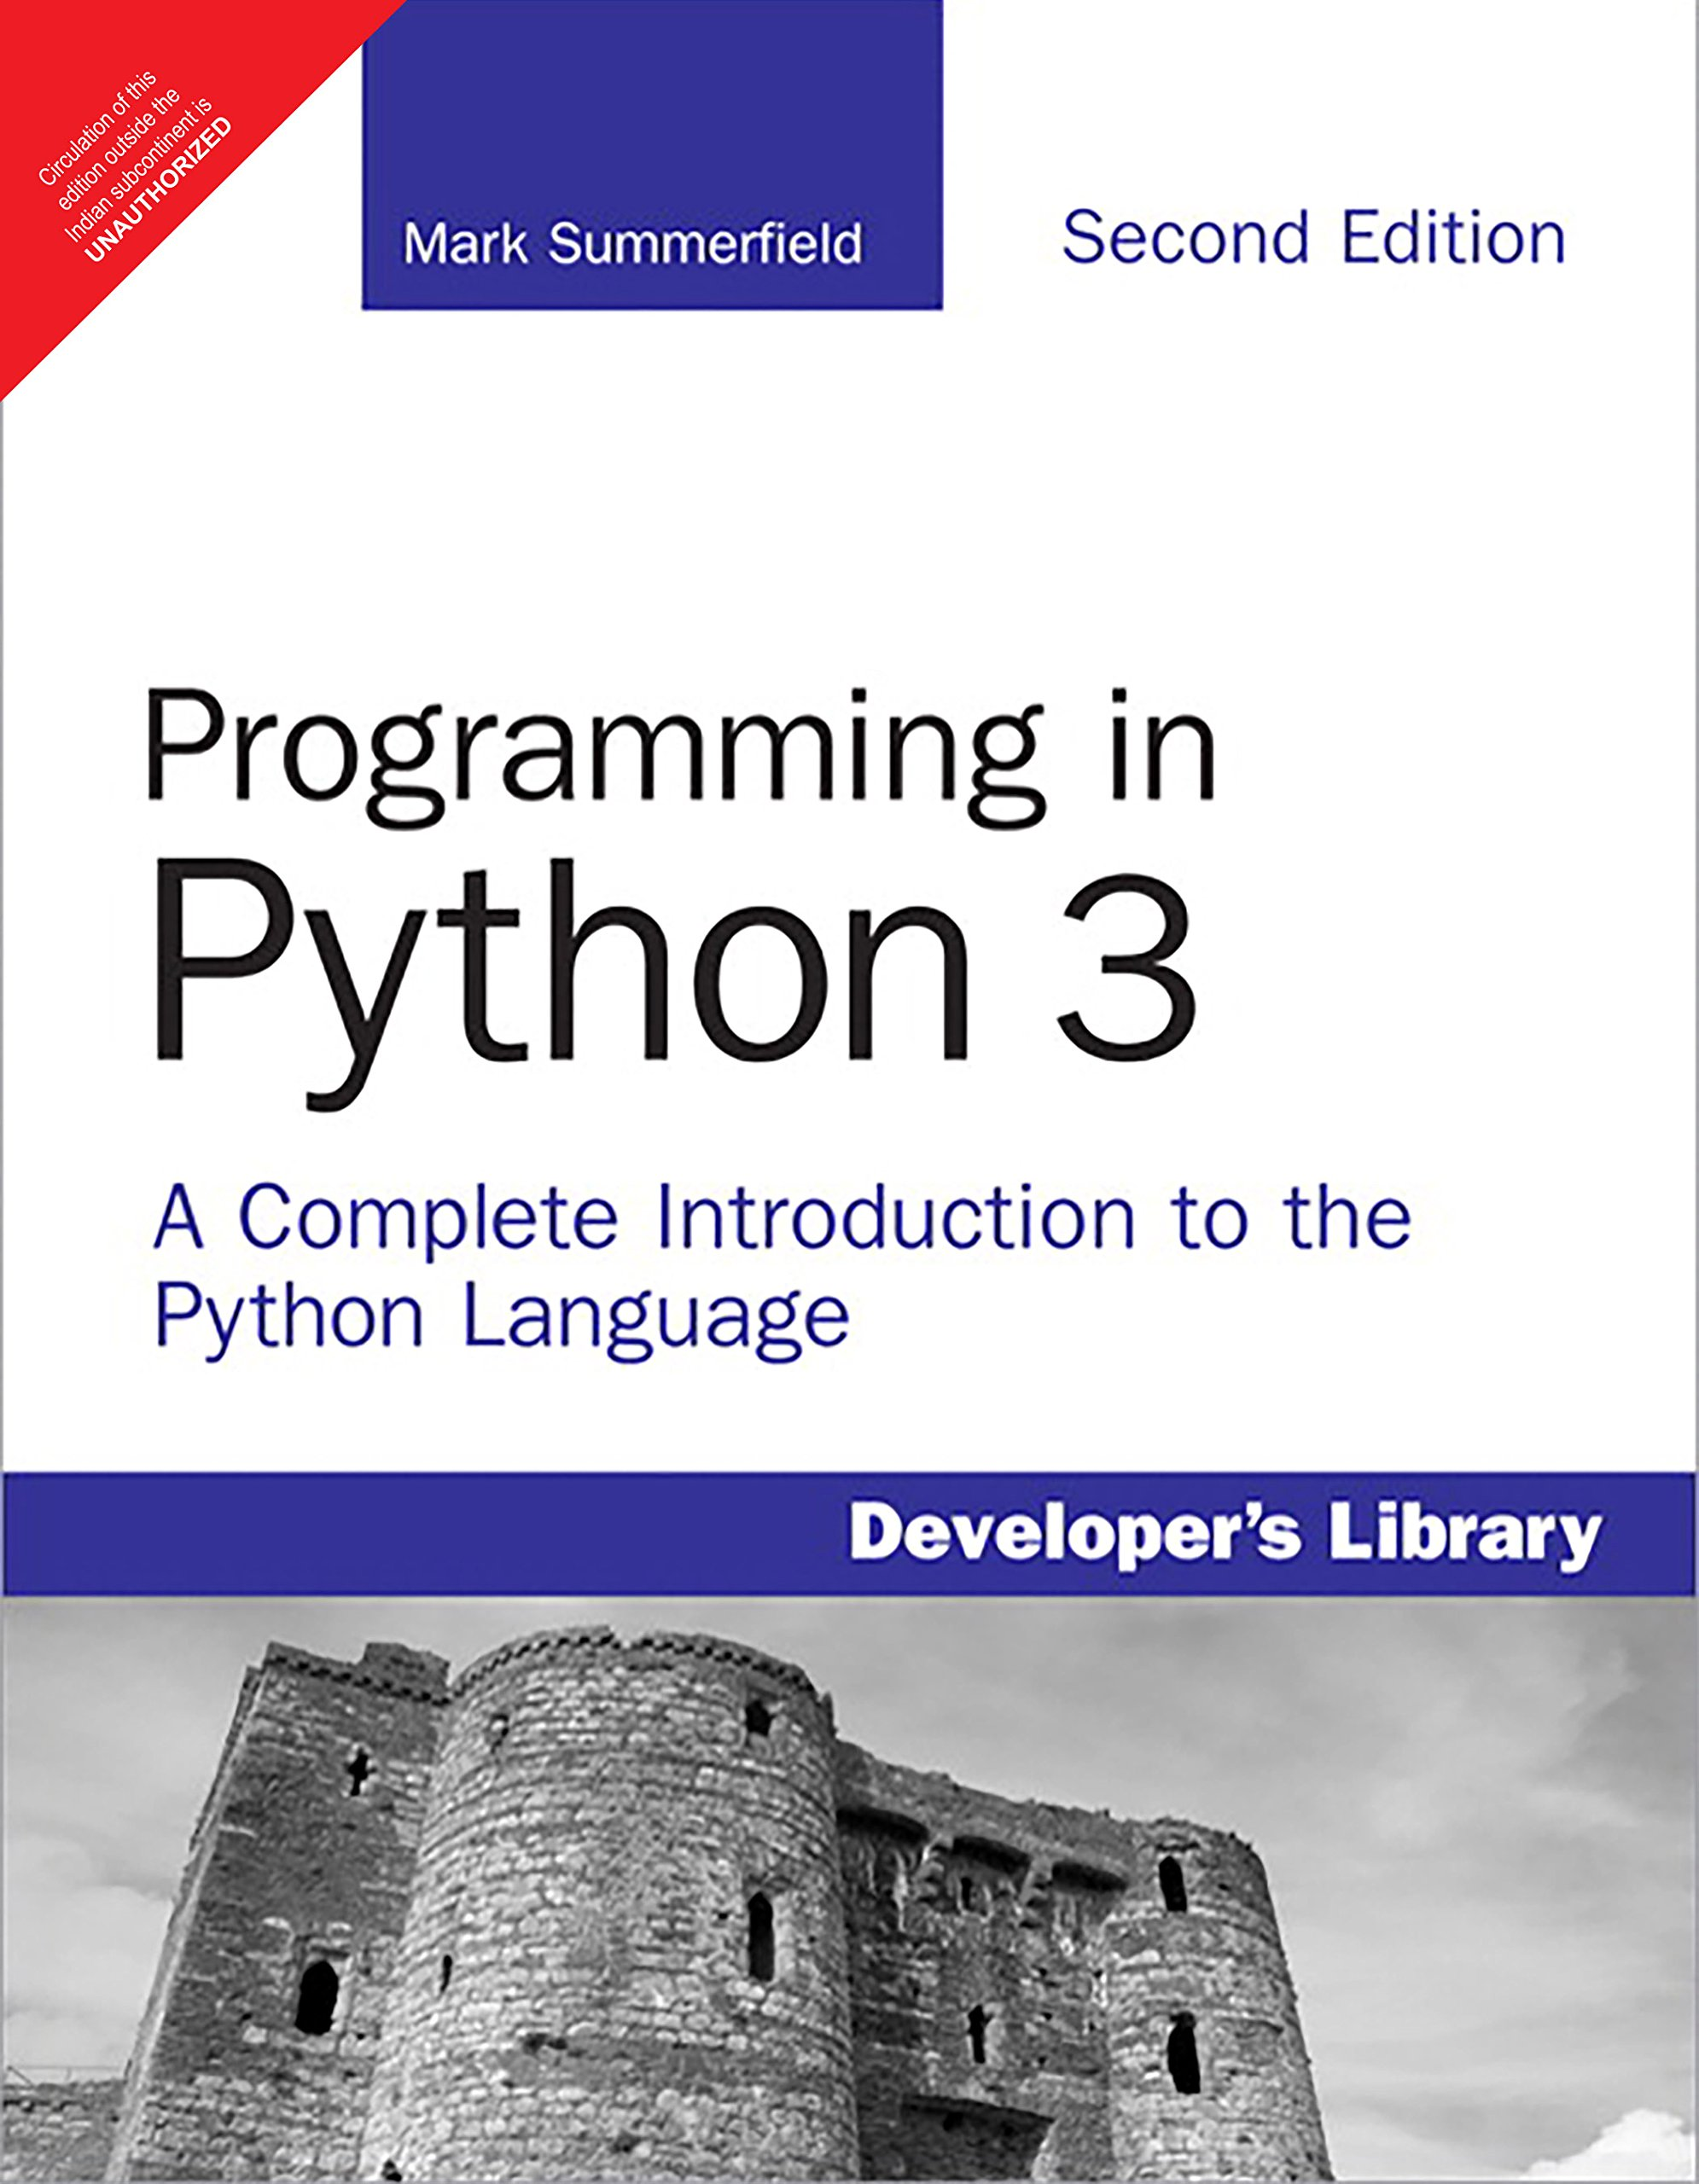 Programming In Python 3: A Complete Introduction To The Python Language,  2Nd Edition: Mark Summerfield: 9789352869176: Amazon.com: Books